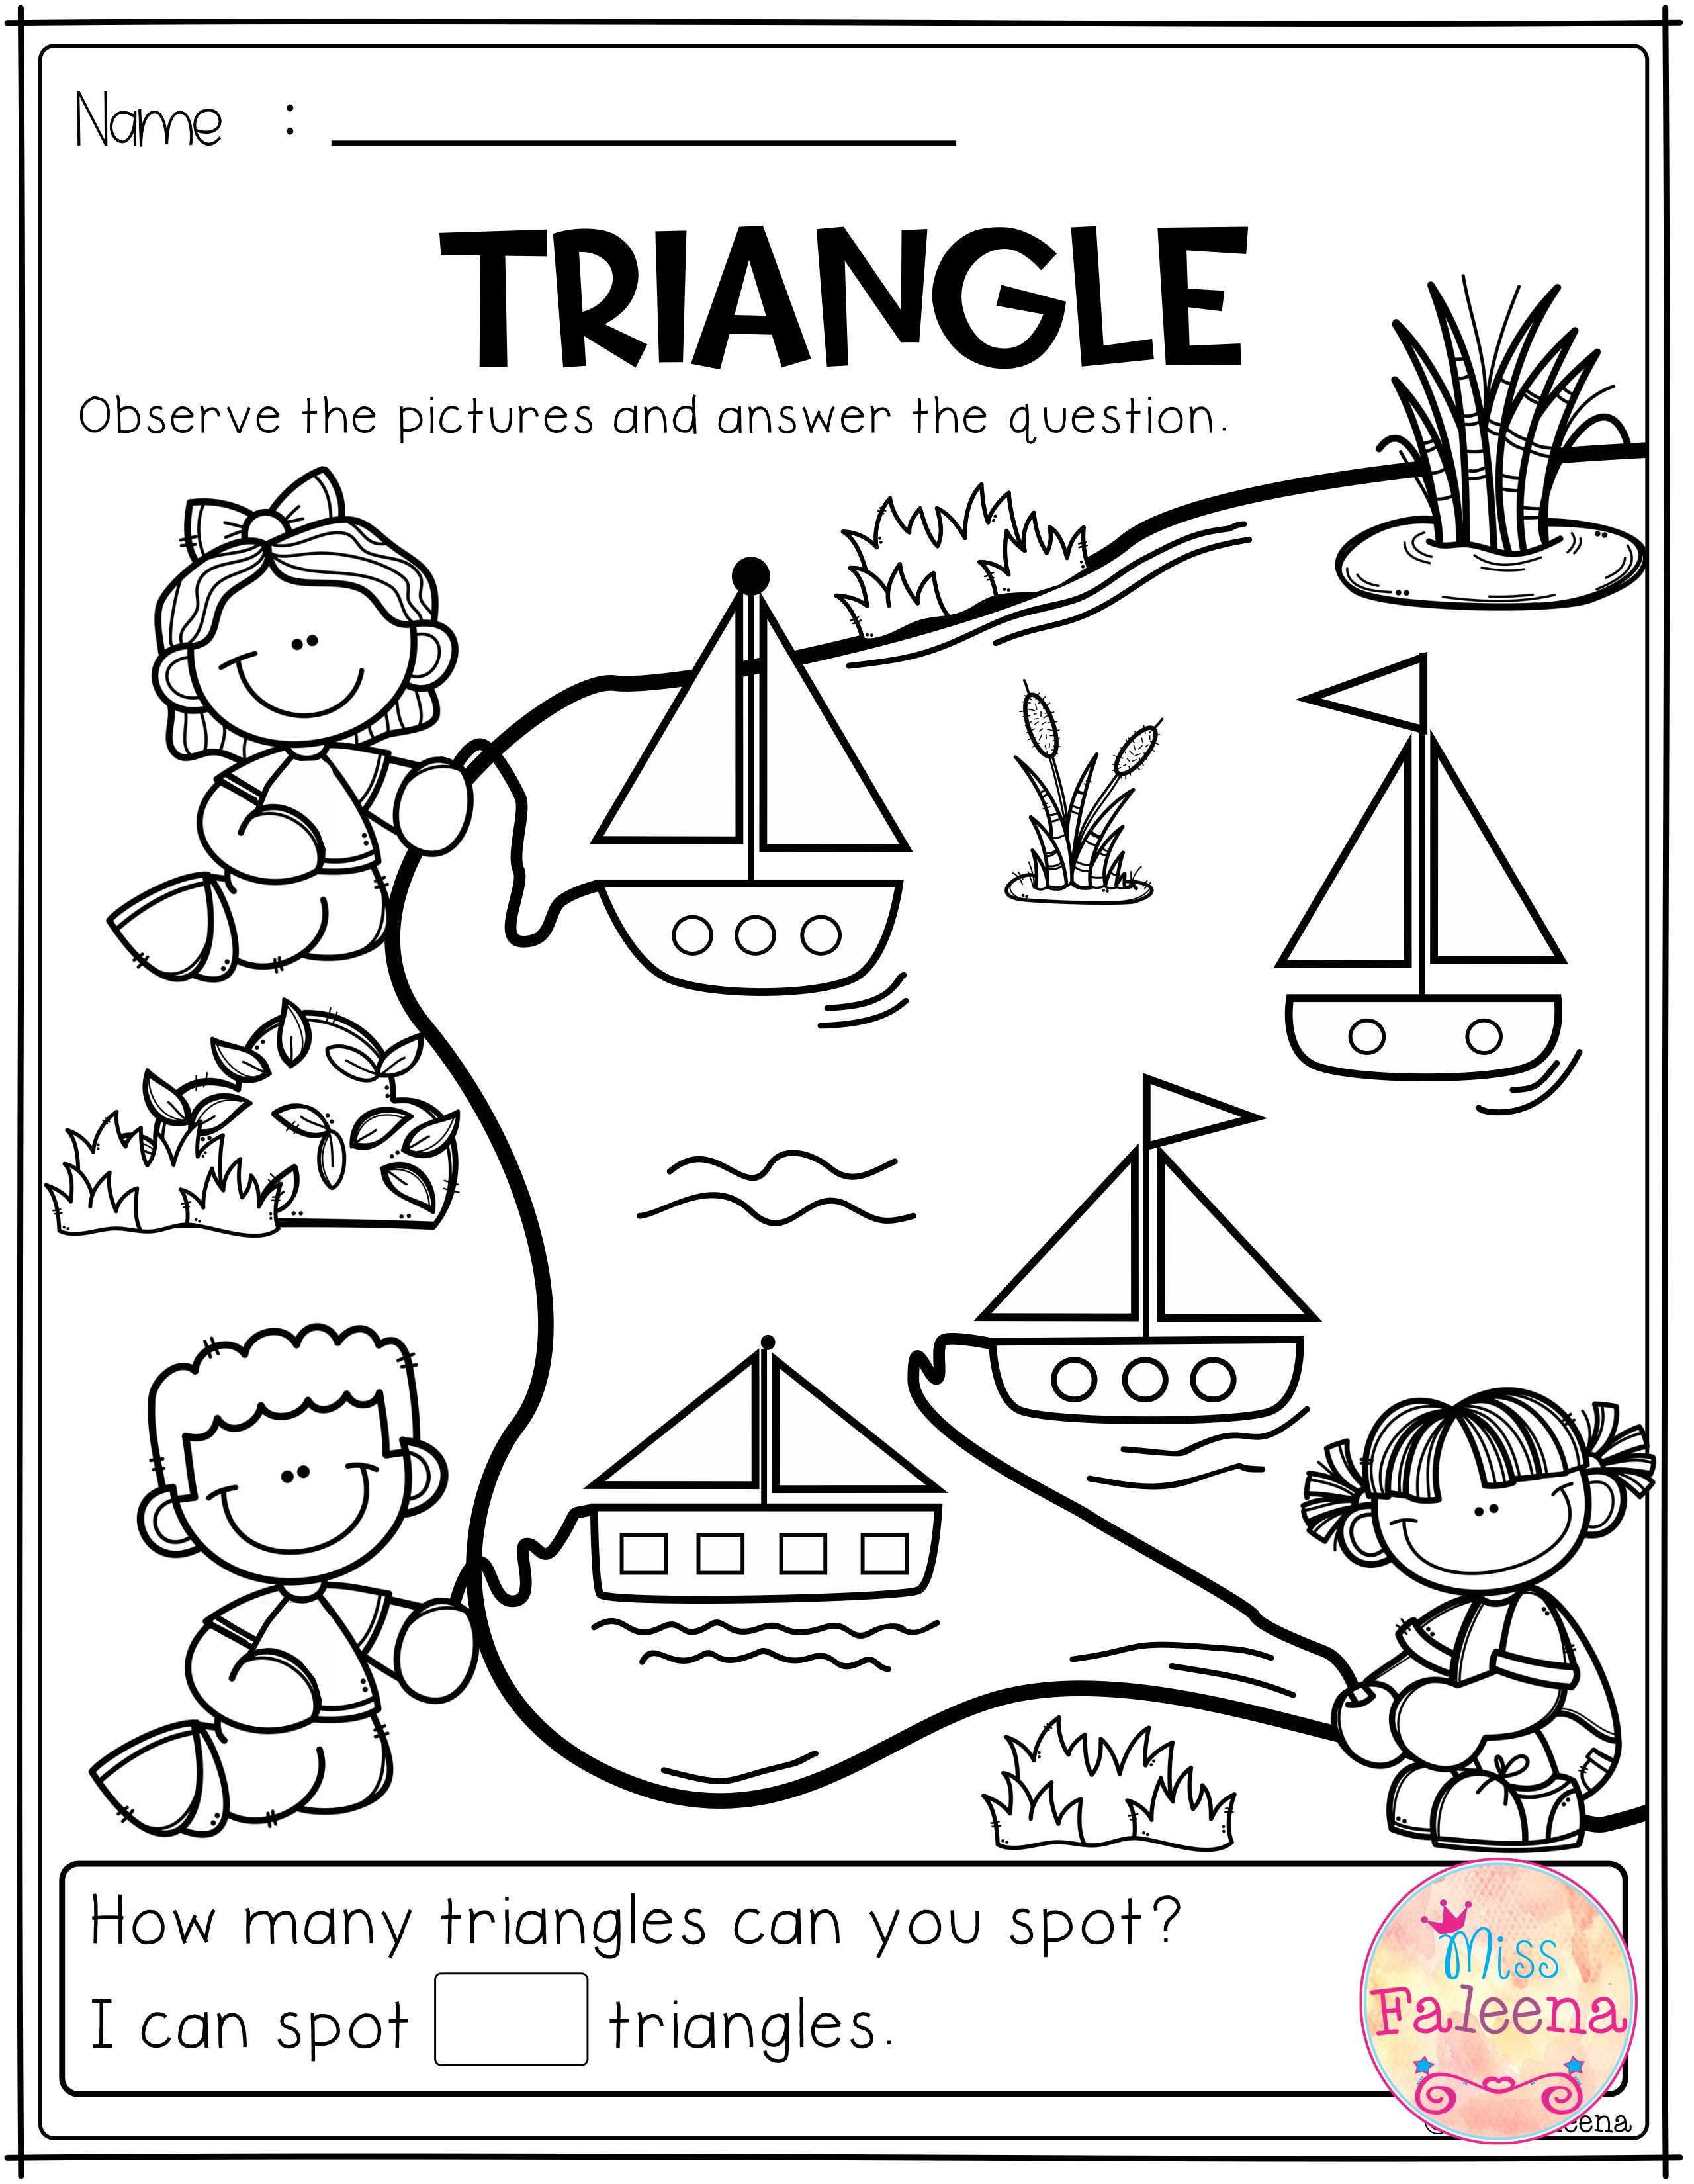 Free Kindergarten Math Has 7 Pages Of Math Practice Worksheets These Pages Are Great For Kindergarten And First Grade Students These Pages Can Be Used For Mor